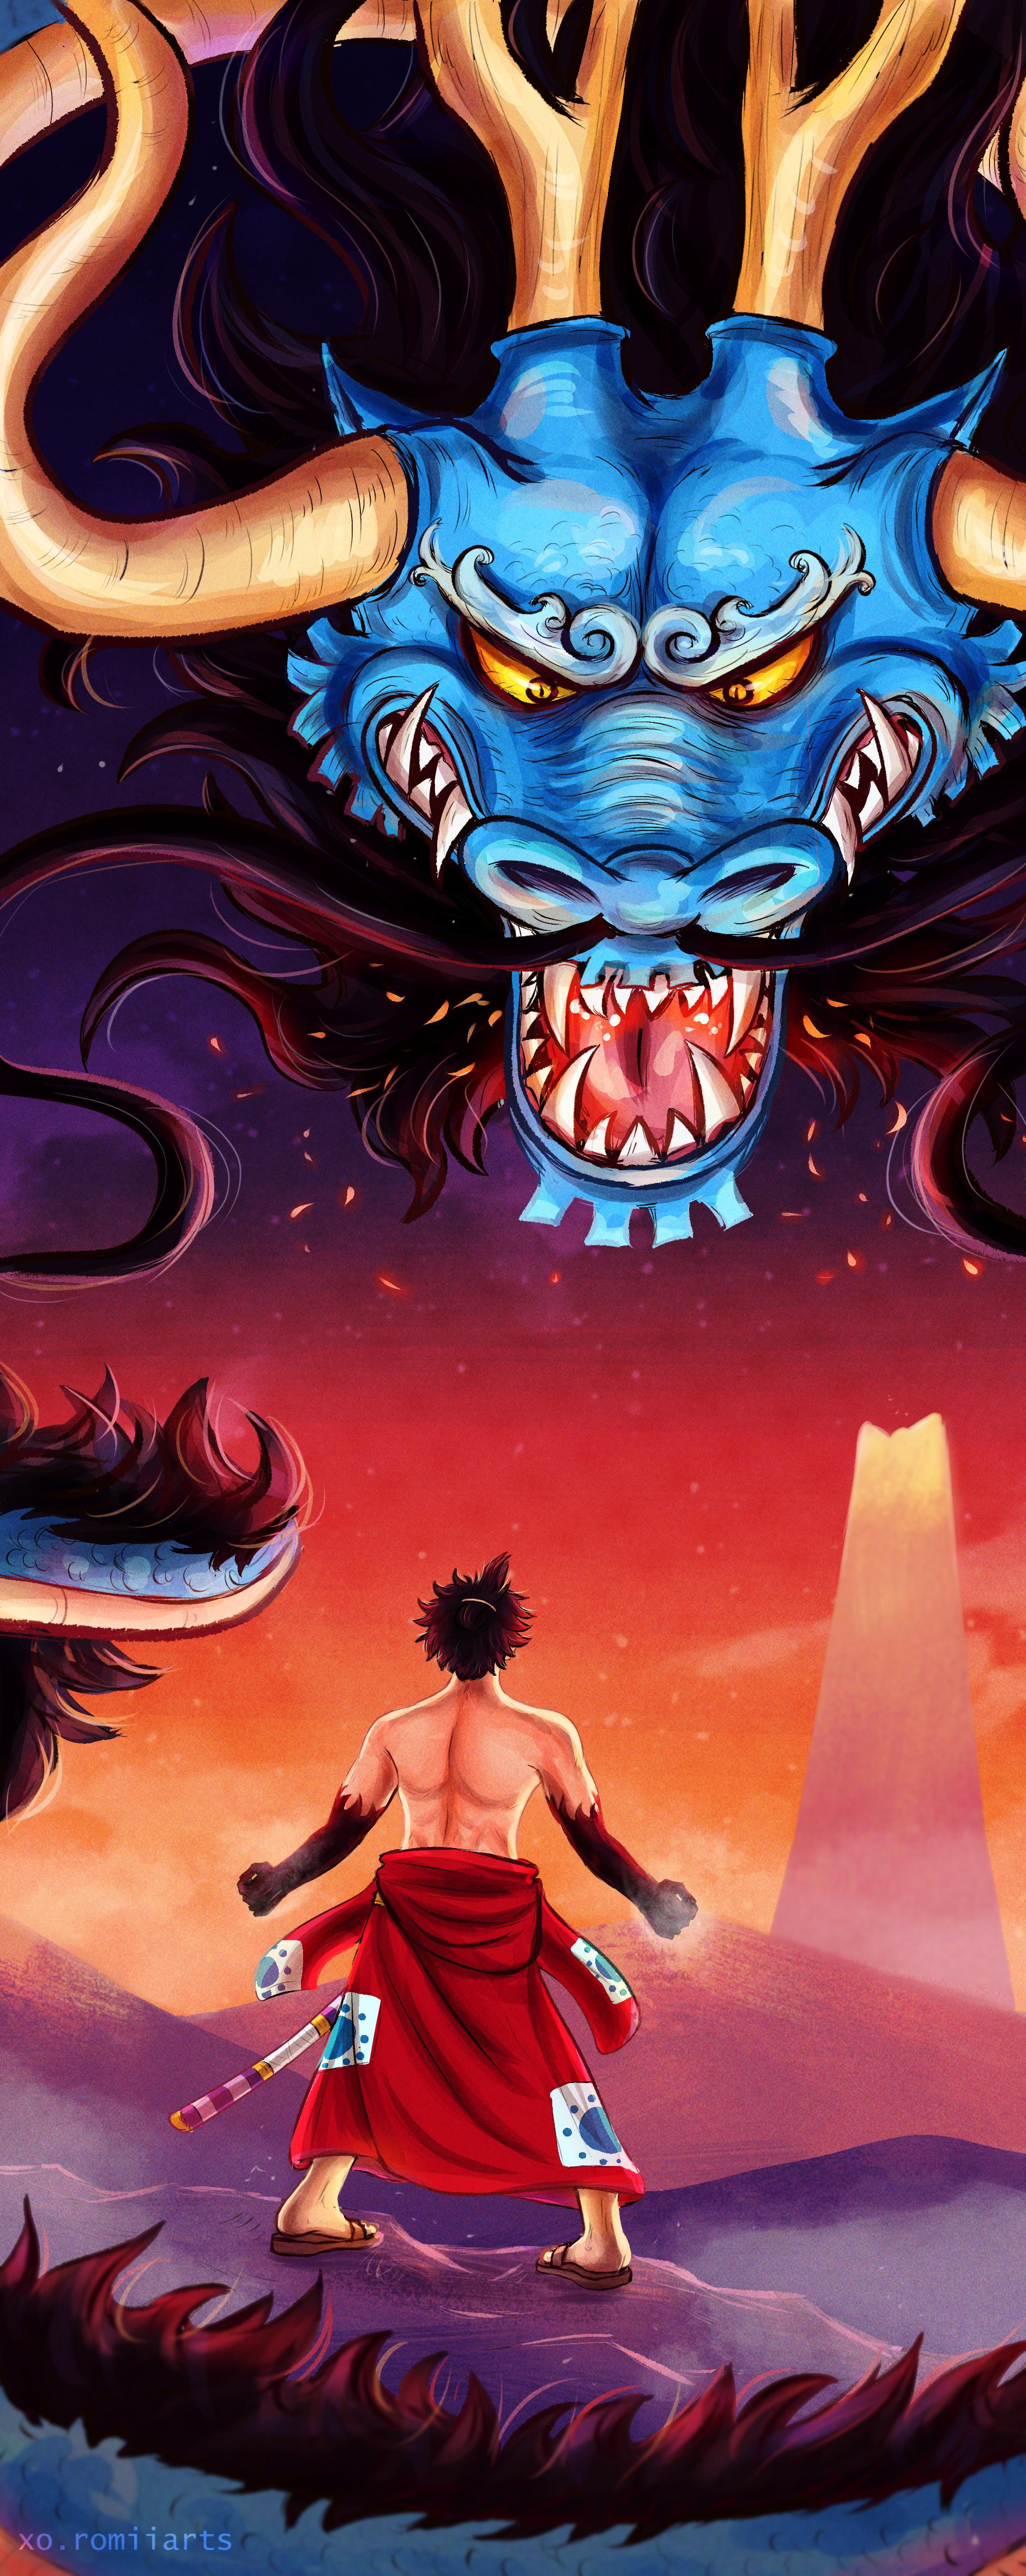 It's been a while since i've done any fan art, but i'm definitely not missing out on this one! One Piece Luffy Vs Kaido Full Fight